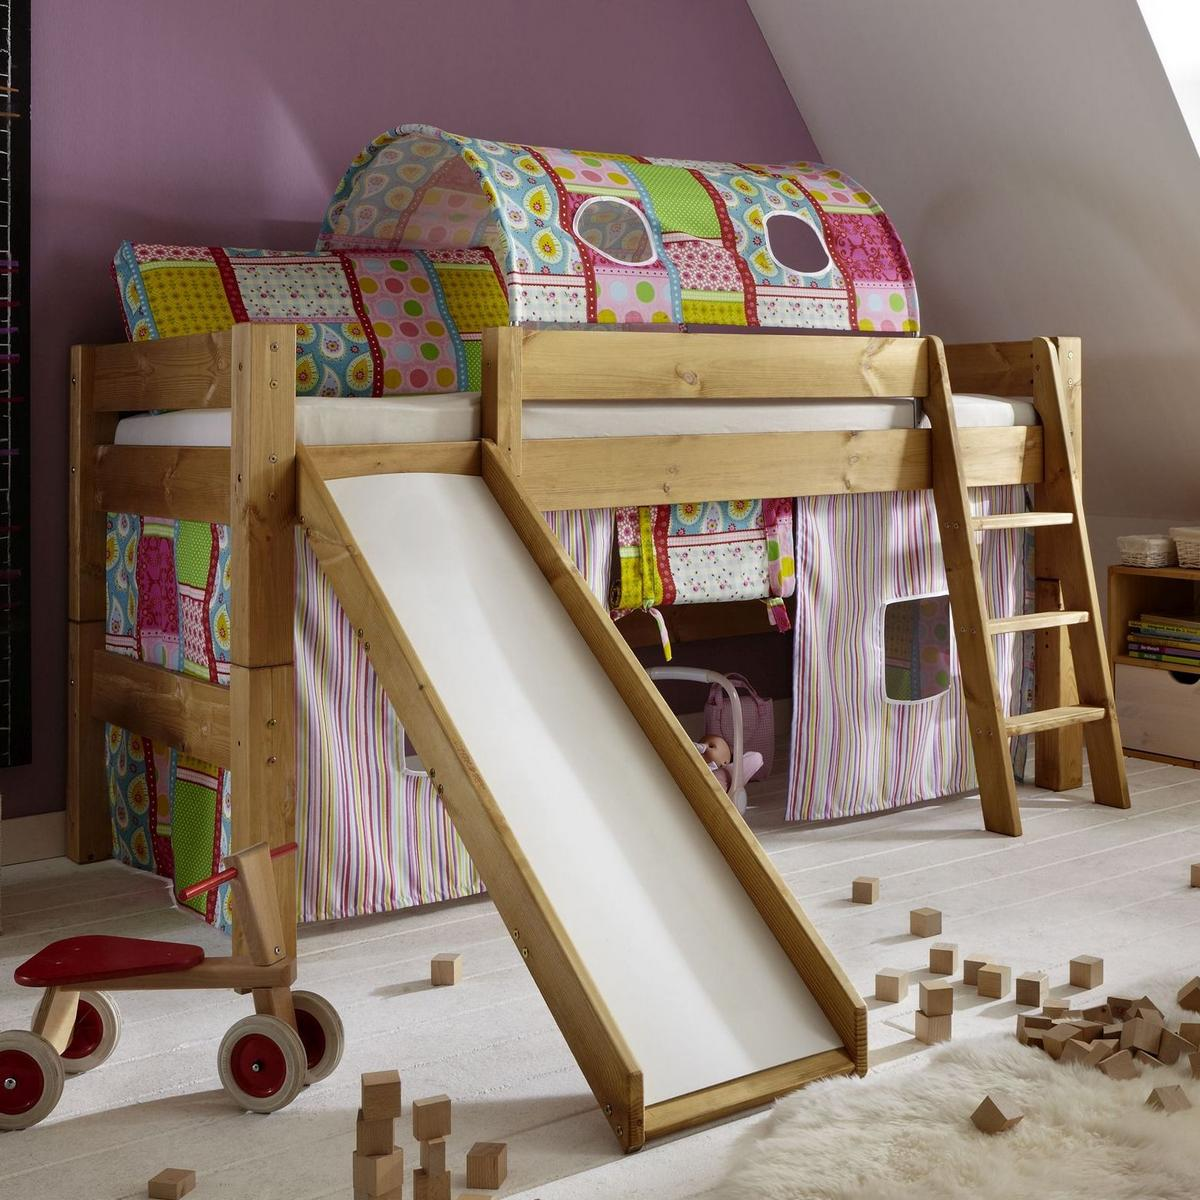 spielbett hochbett mit rutsche tobykids kiefer massiv. Black Bedroom Furniture Sets. Home Design Ideas